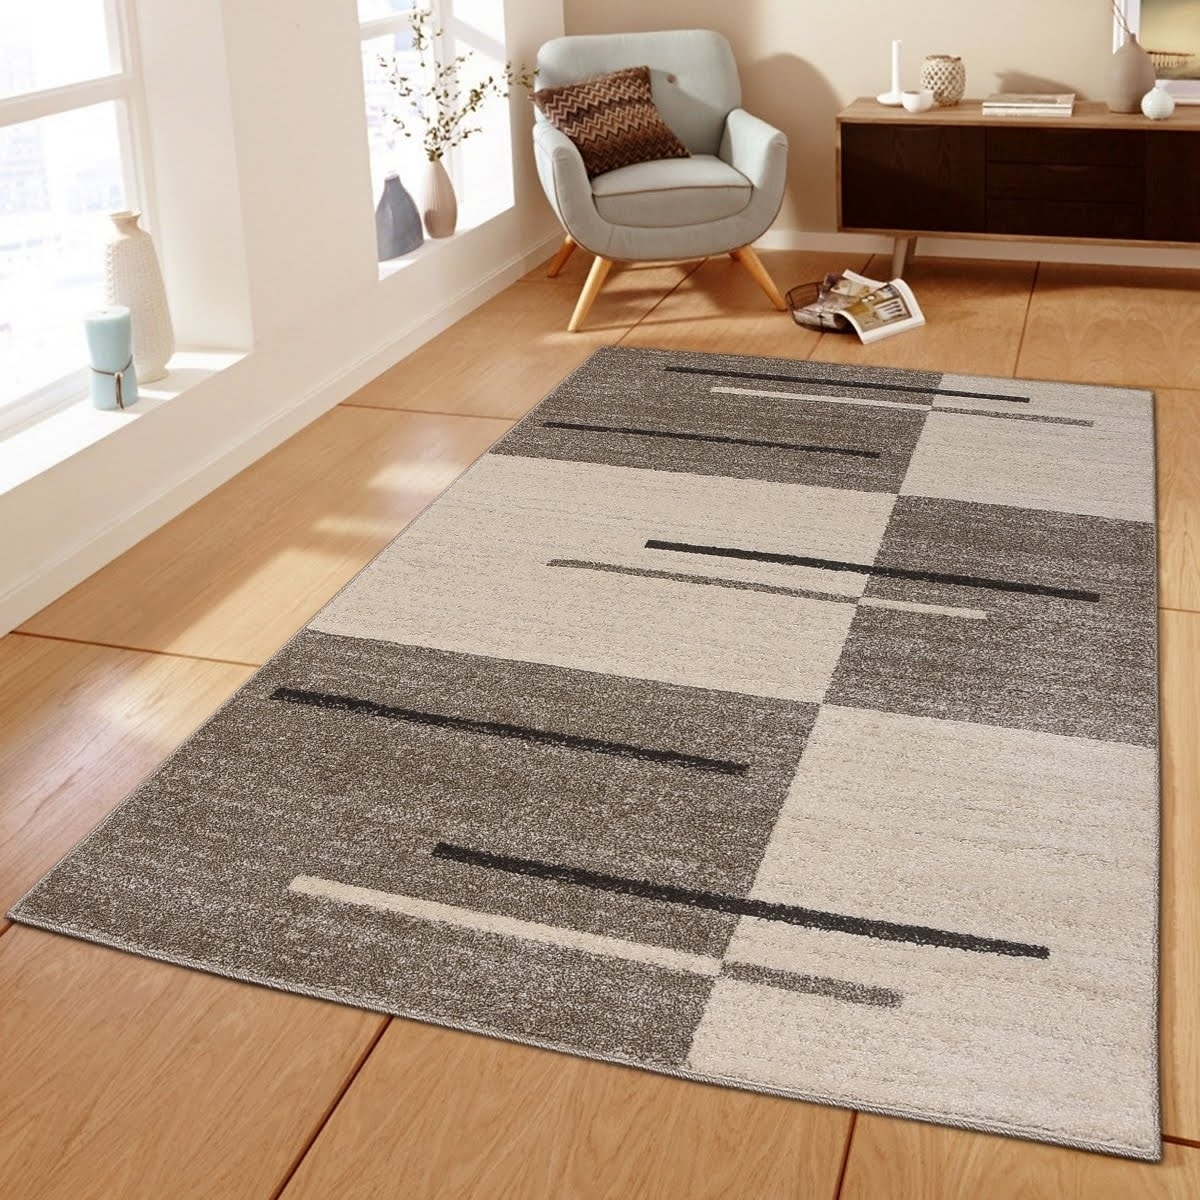 Piano String Area Rug 5 Ft By 7